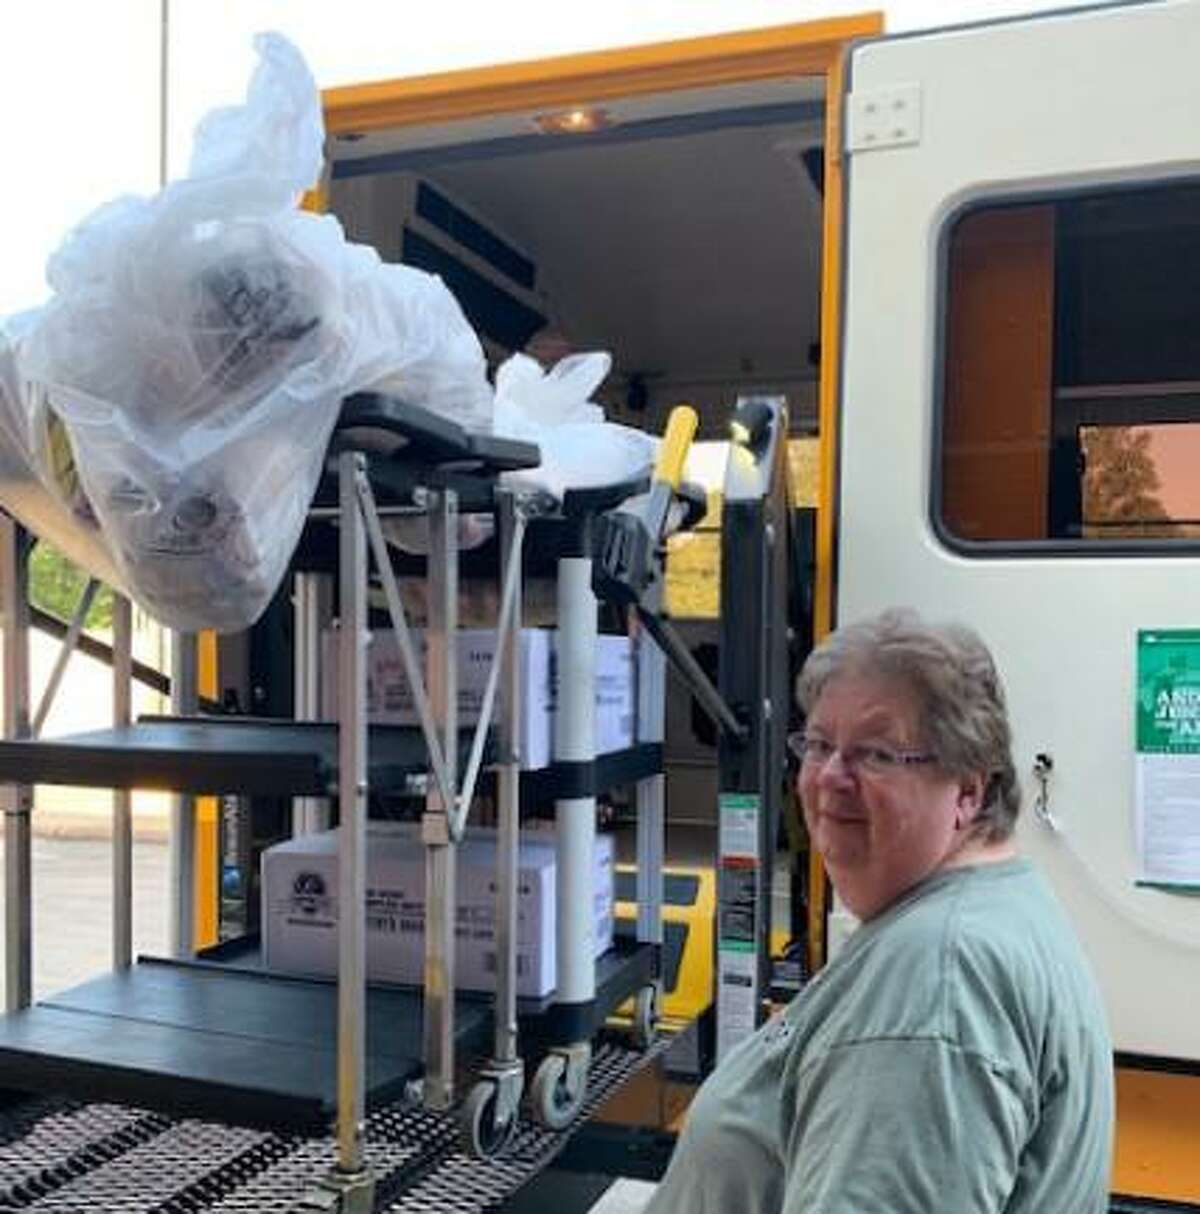 Magnolia ISD delivers meals to children during the COVID-19 pandemic.